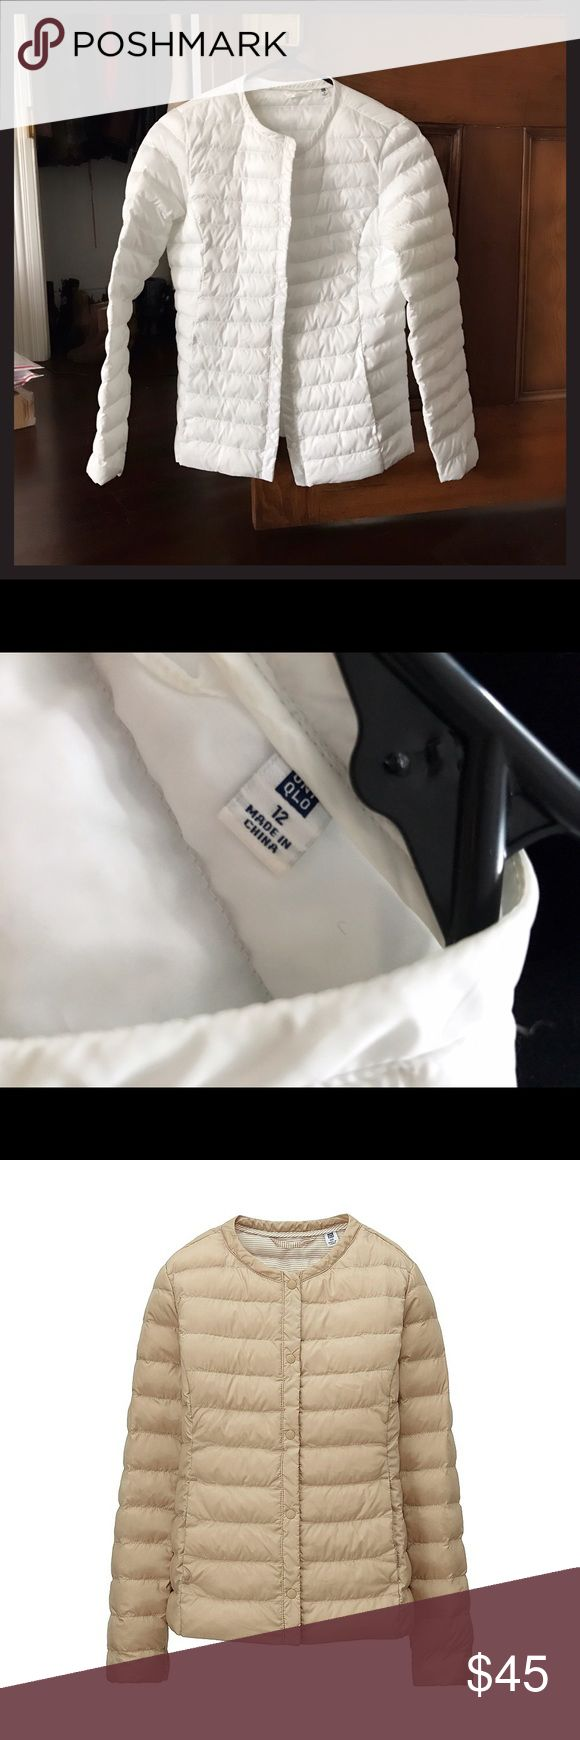 UNIQLO Light Padded Jacket Warm, light padded jacket in white. Perfect condition, no flaws. Girls size 12, perfect for XS. Uniqlo Jackets & Coats Puffers